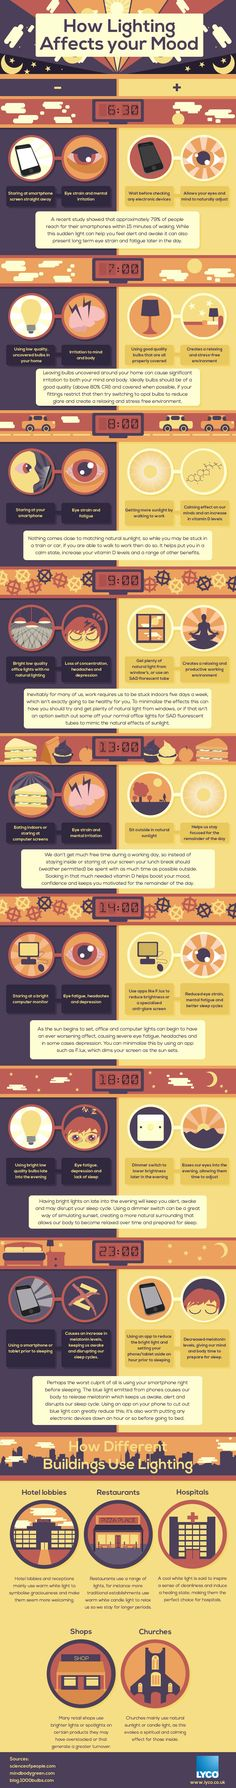 How Lighting Affects Your Mood #Infographic #LifeStyle